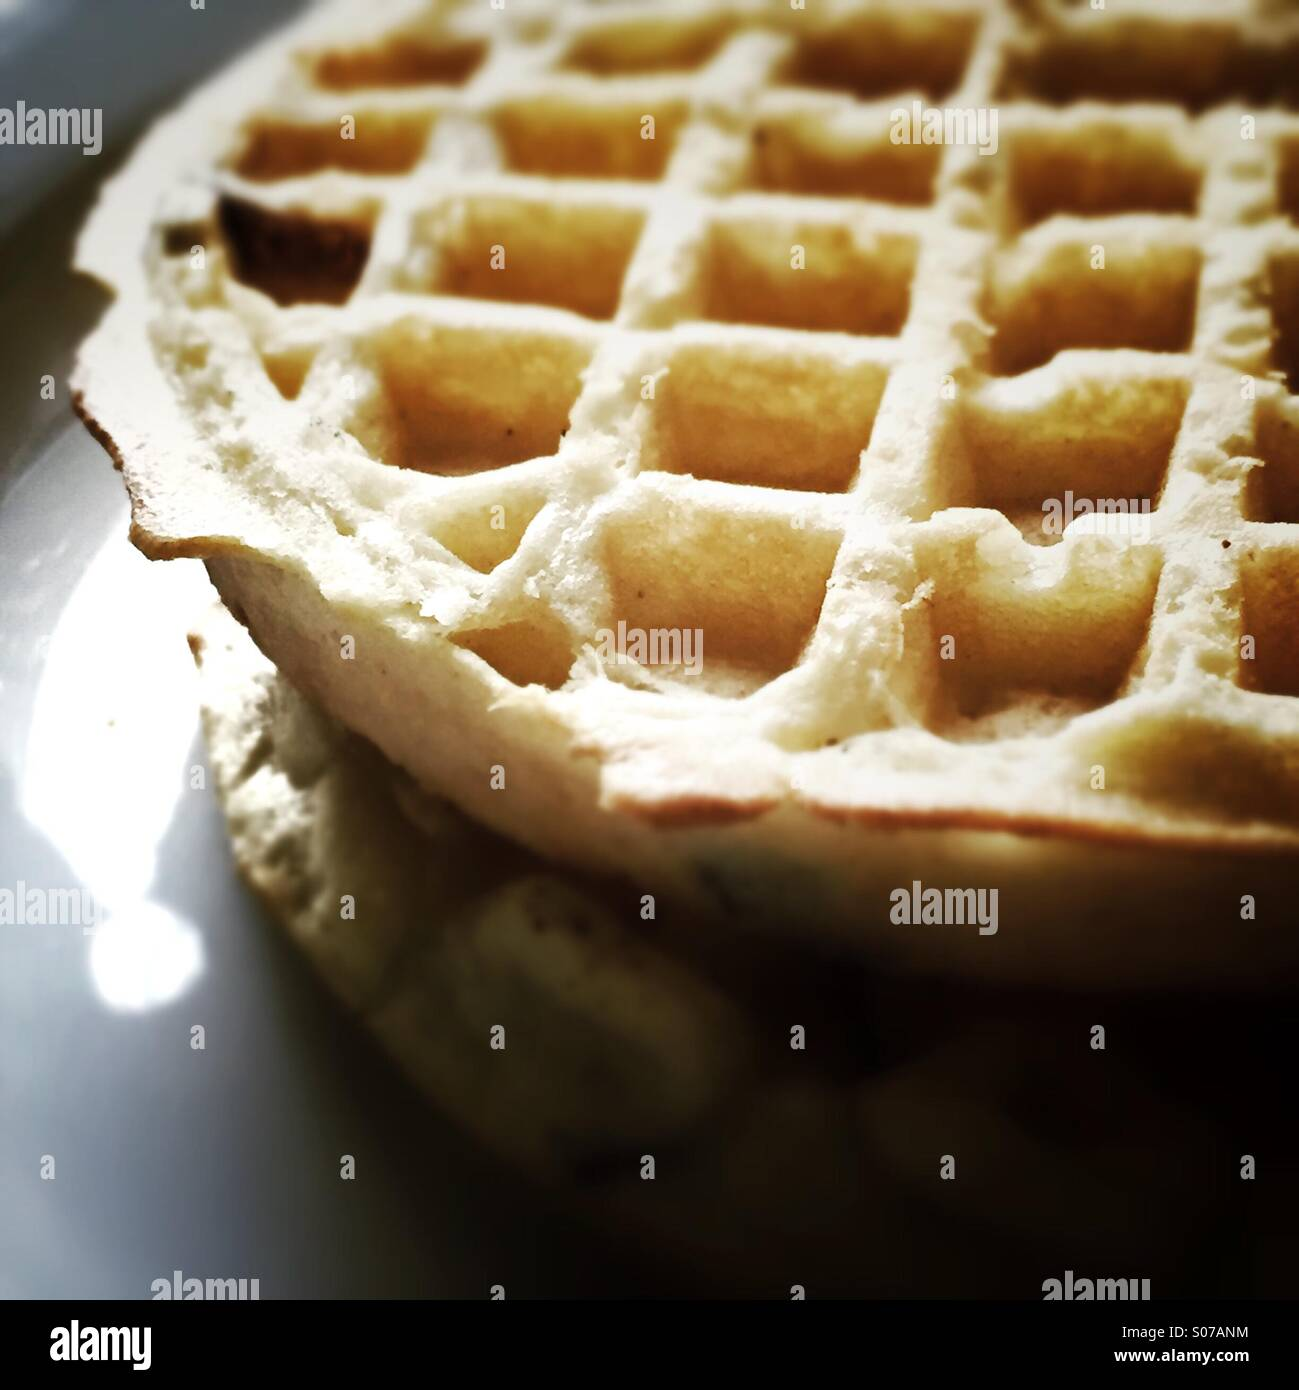 Waffles on white plate - Stock Image